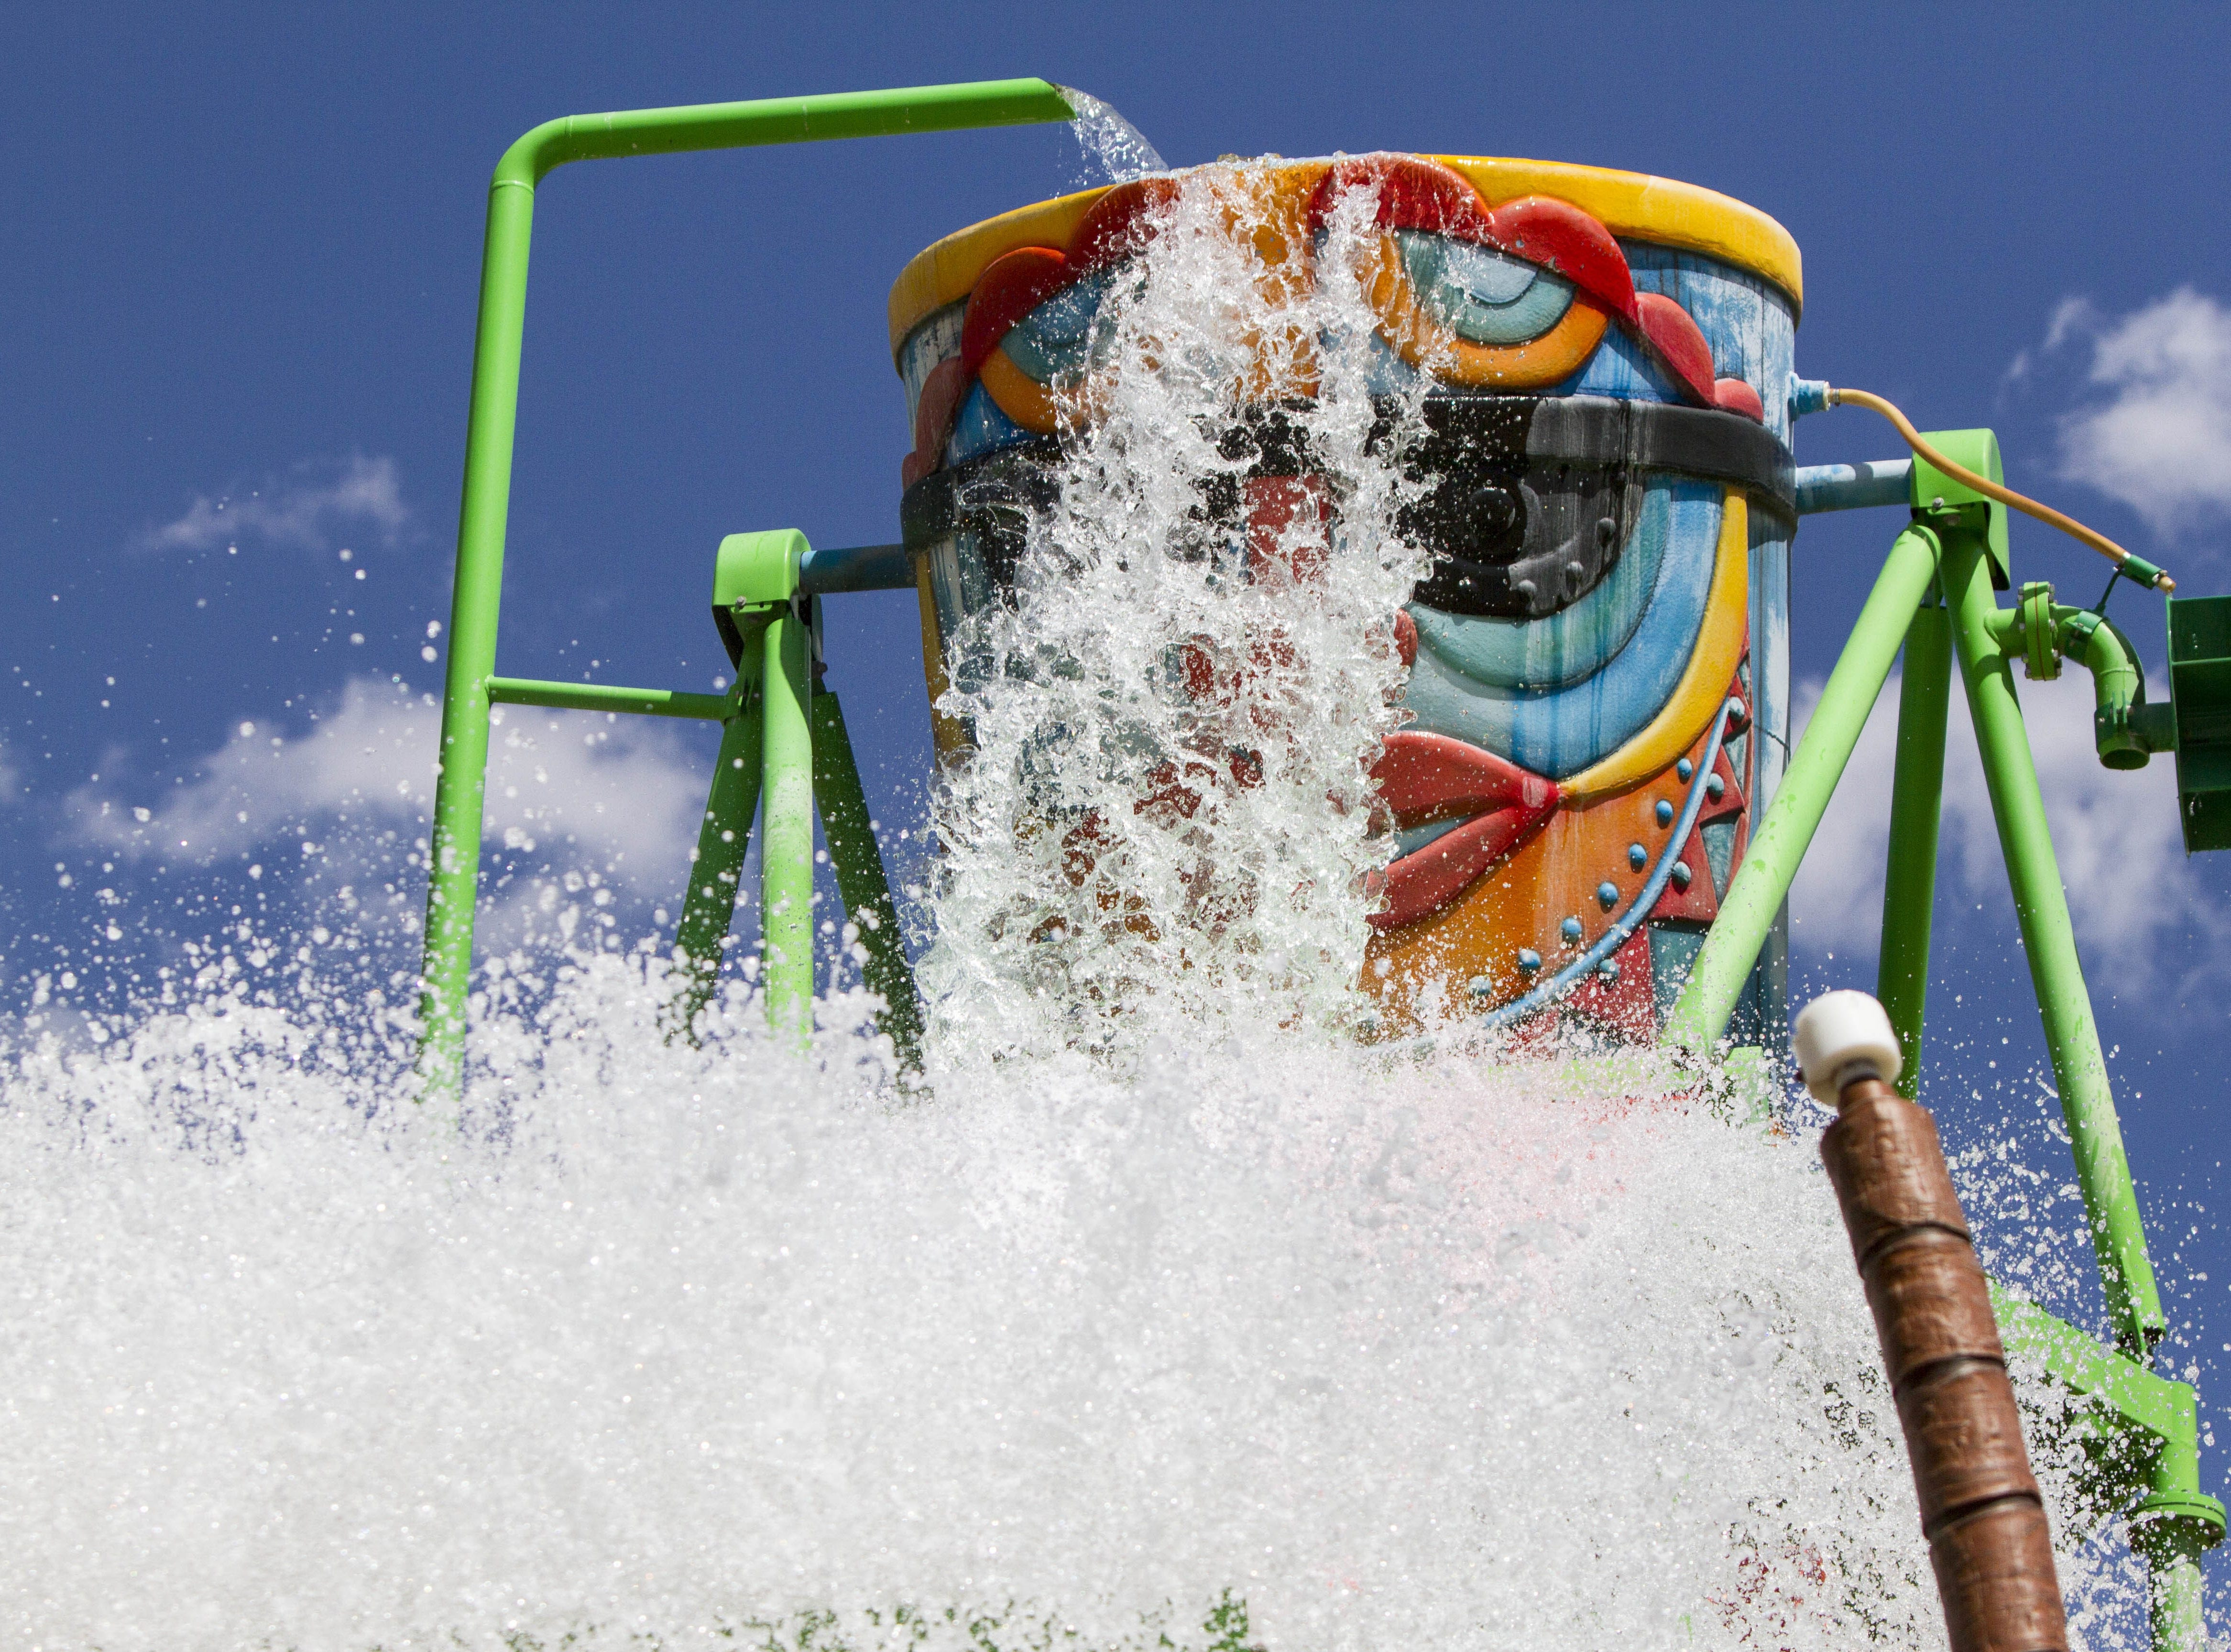 A giant bucket dumps water on people at Boogie Board Beach at Wet'n'Wild, Saturday, May 9, 2015, in Glendale, Ariz.